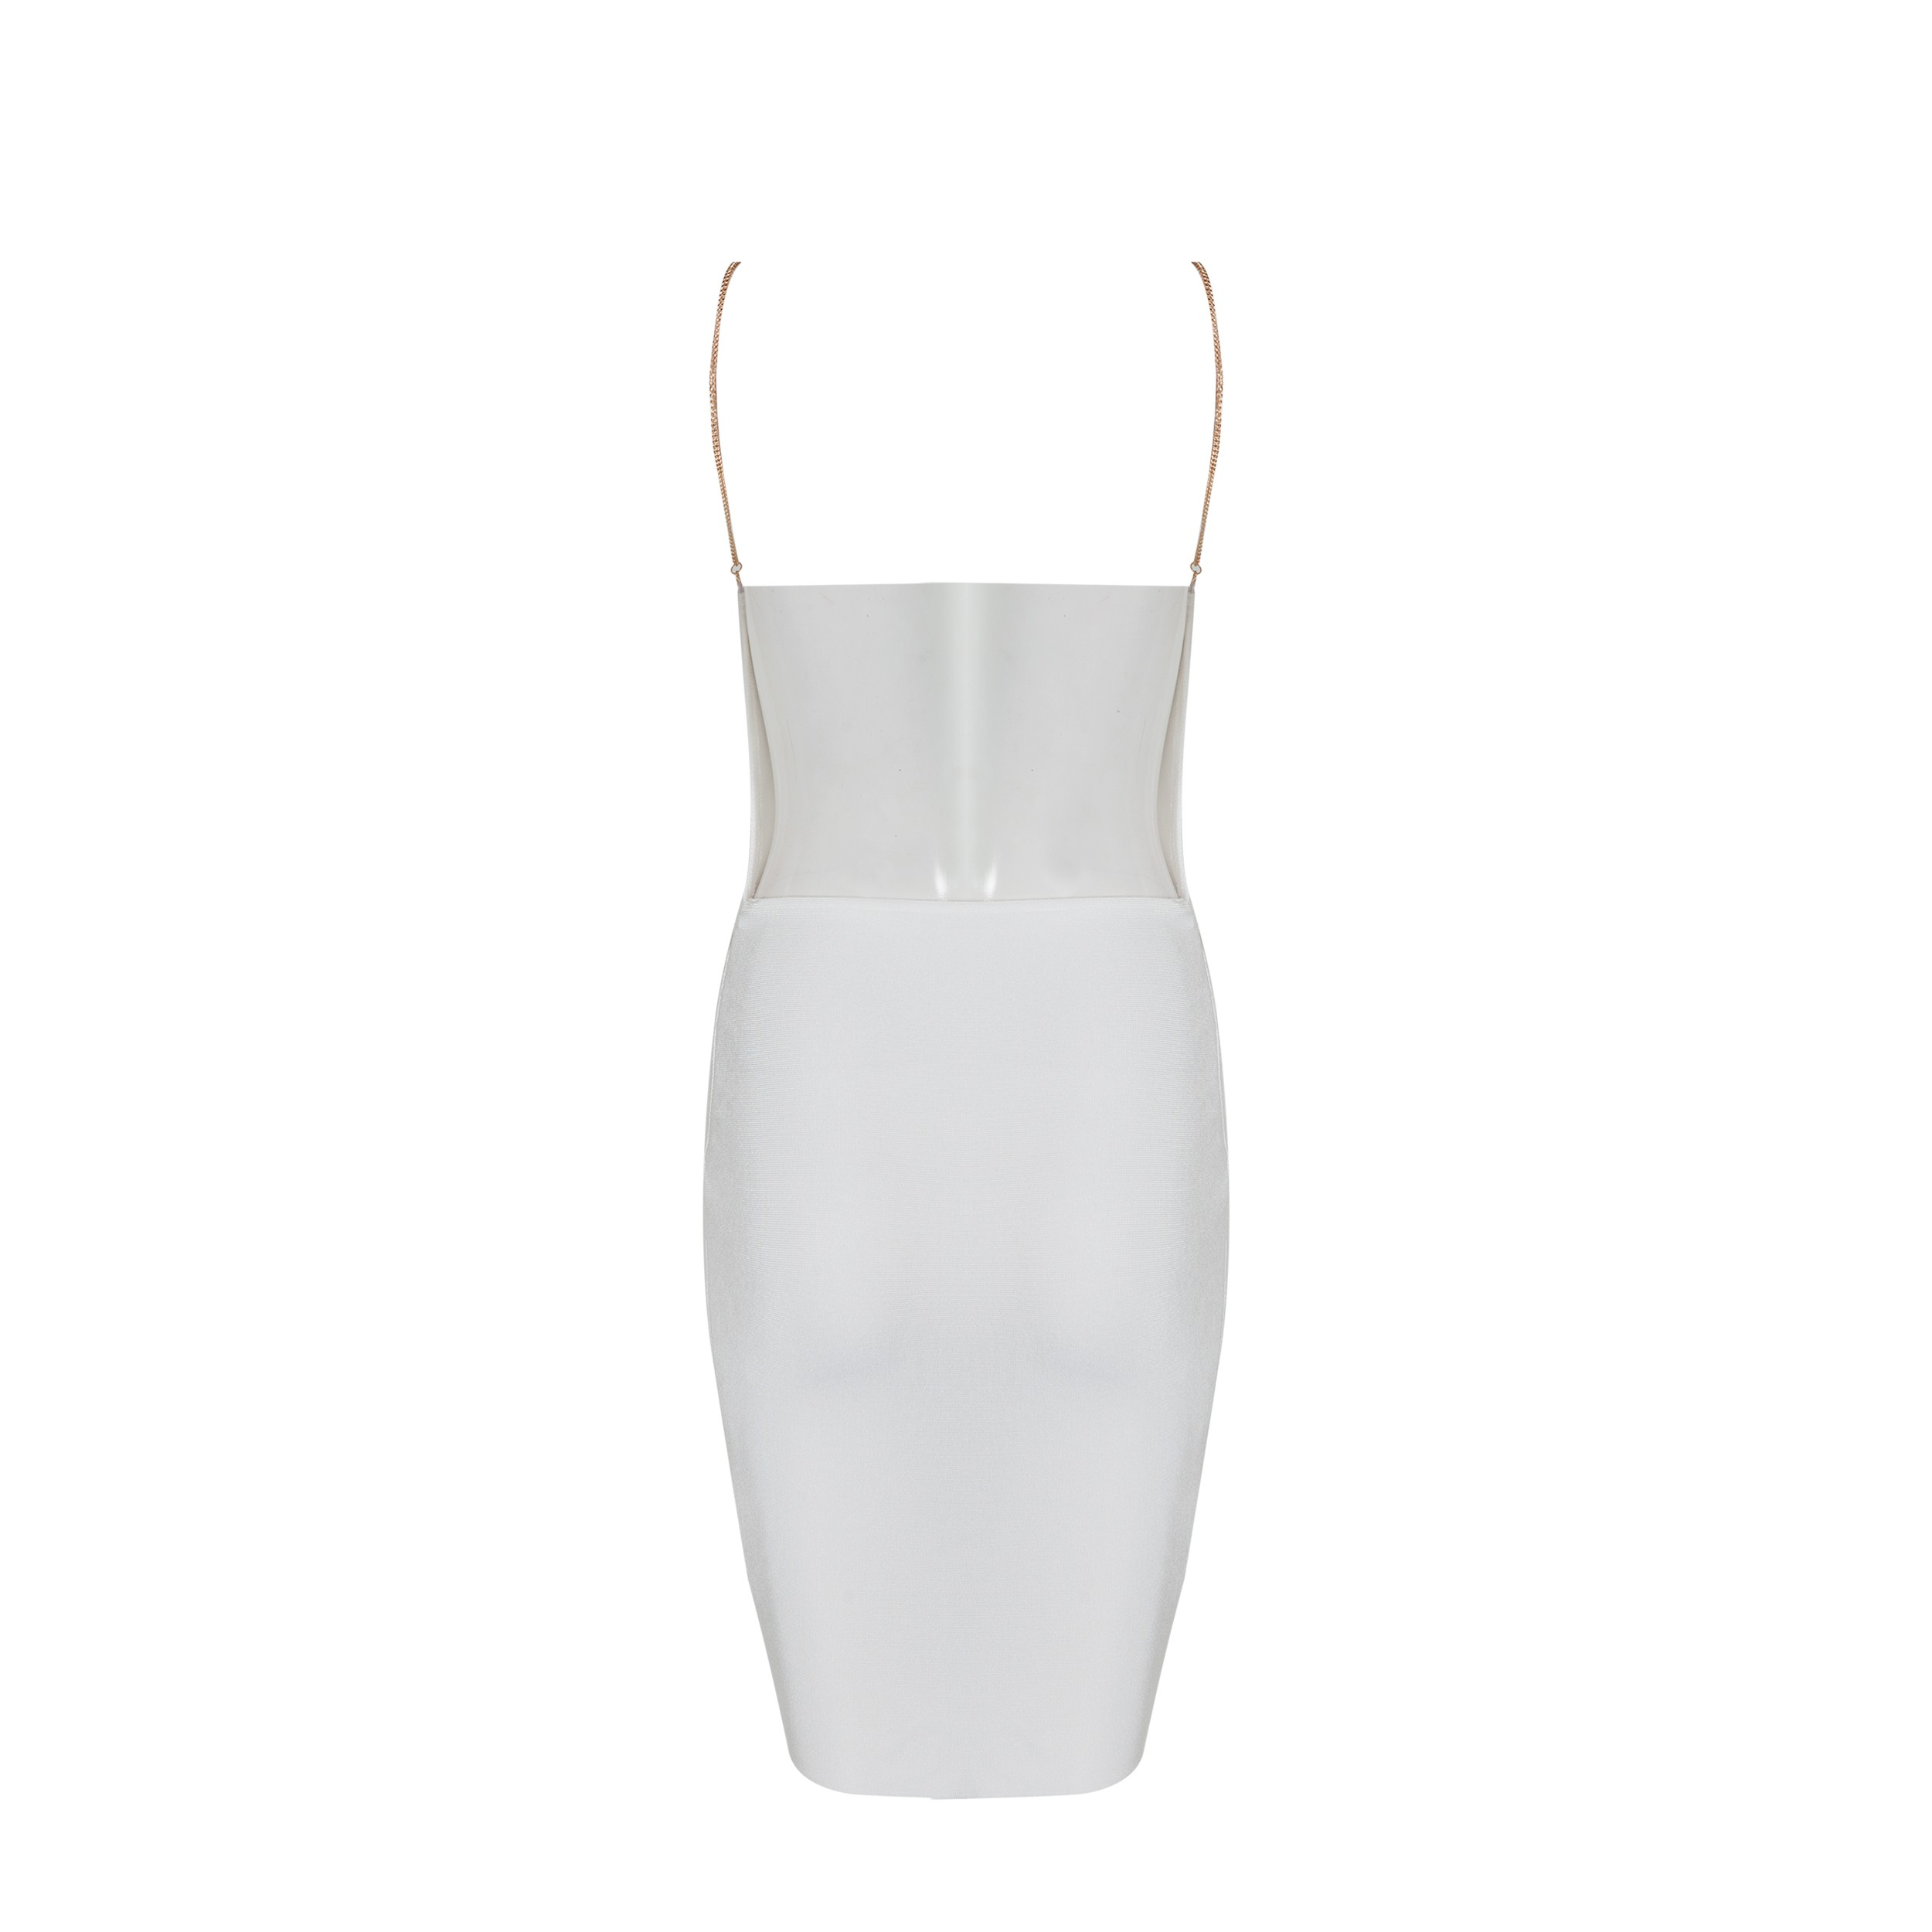 White Strapy Sleeveless Mini Backless Plain Summer Bandage Dress HB1007-White